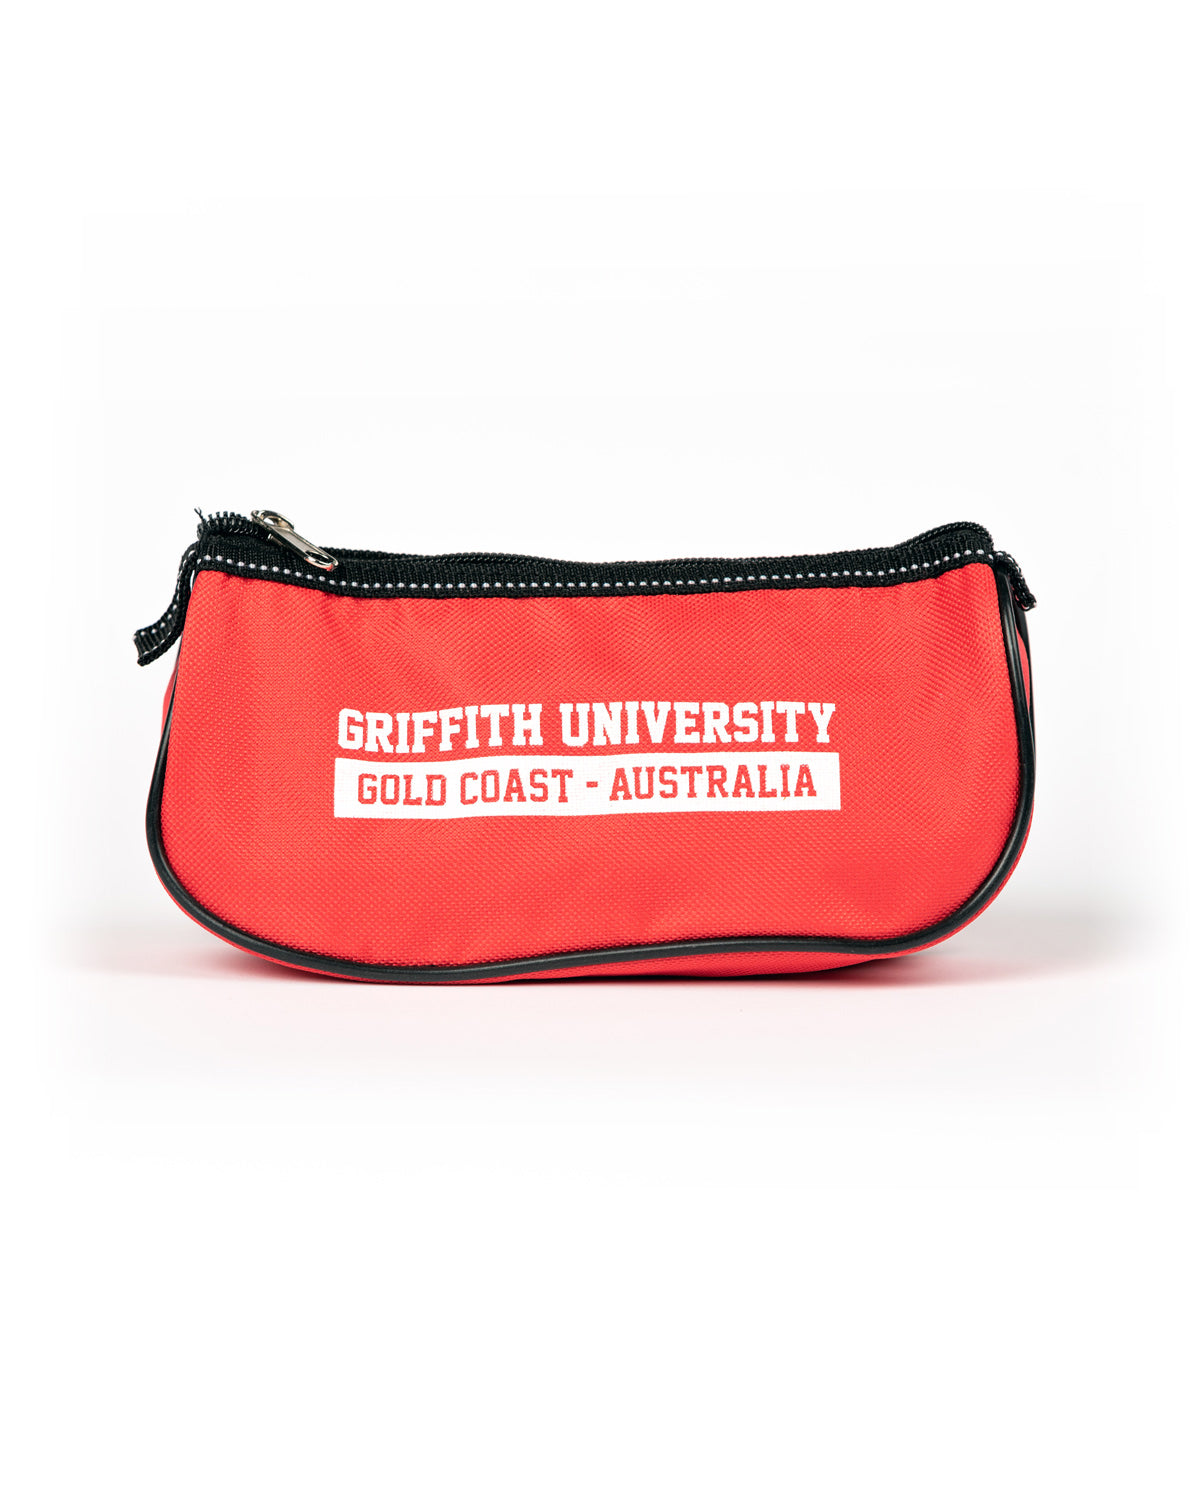 Griffith pencil case